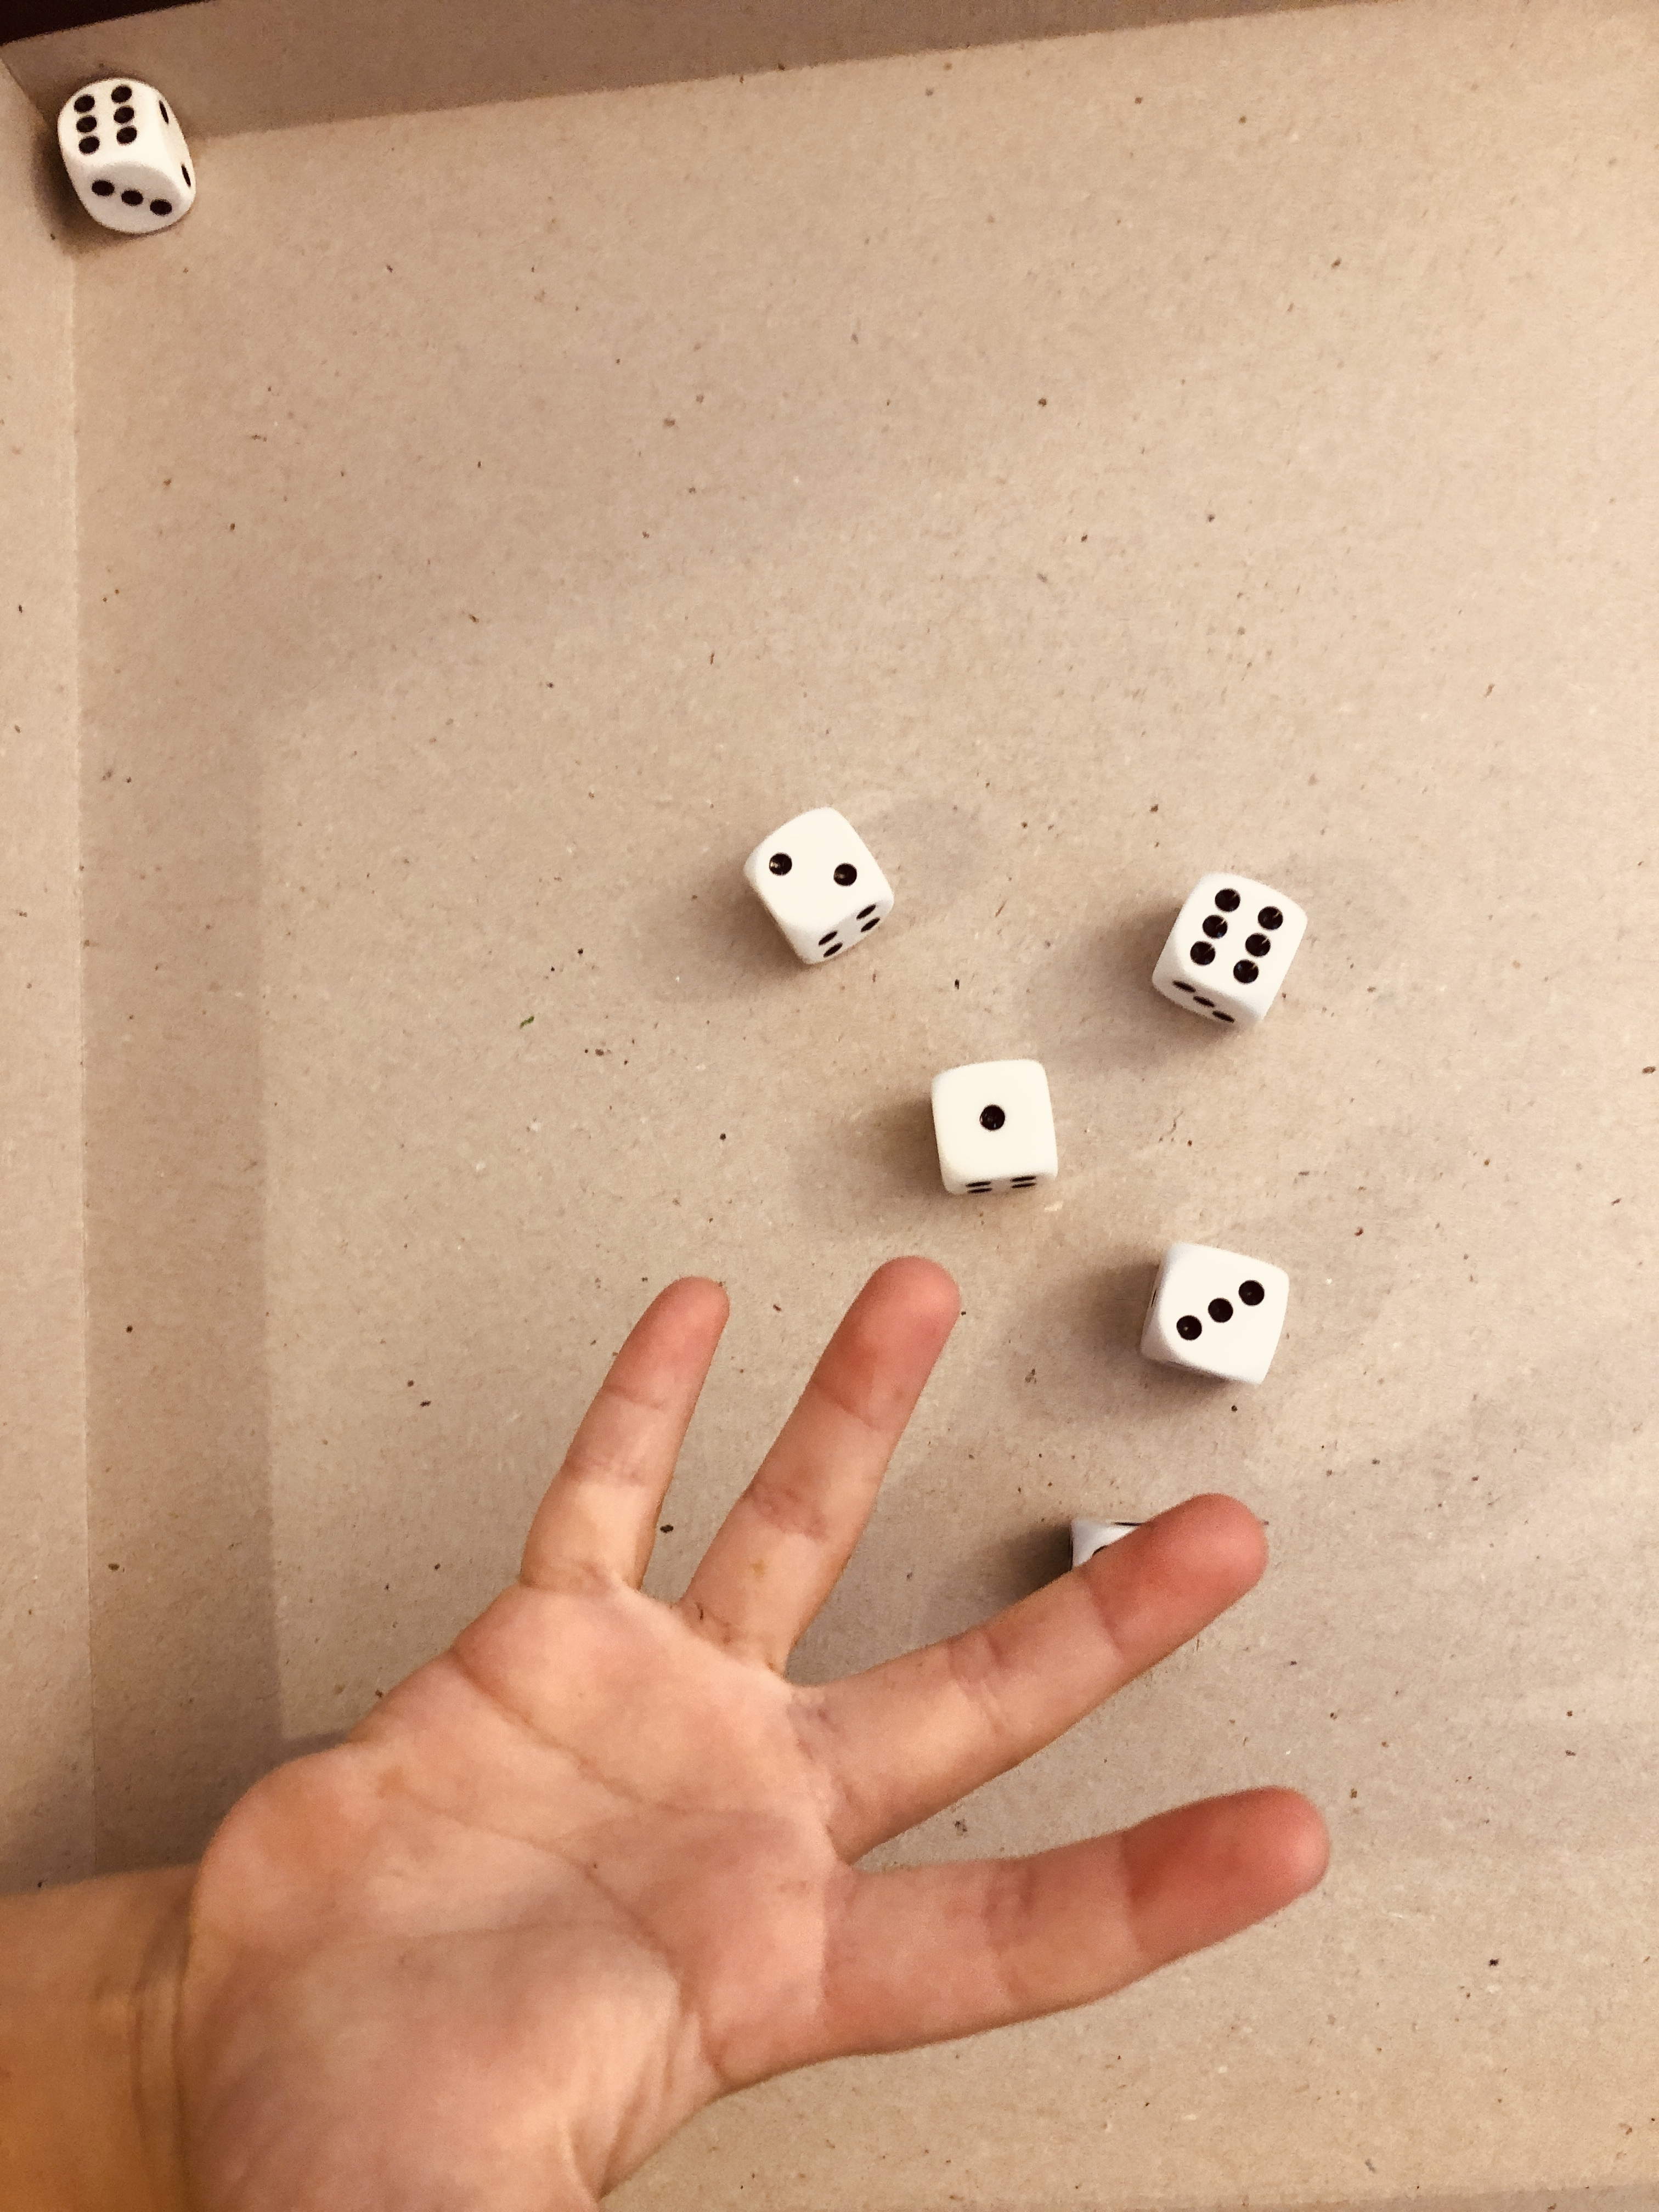 rolling dice for the dice bingo game